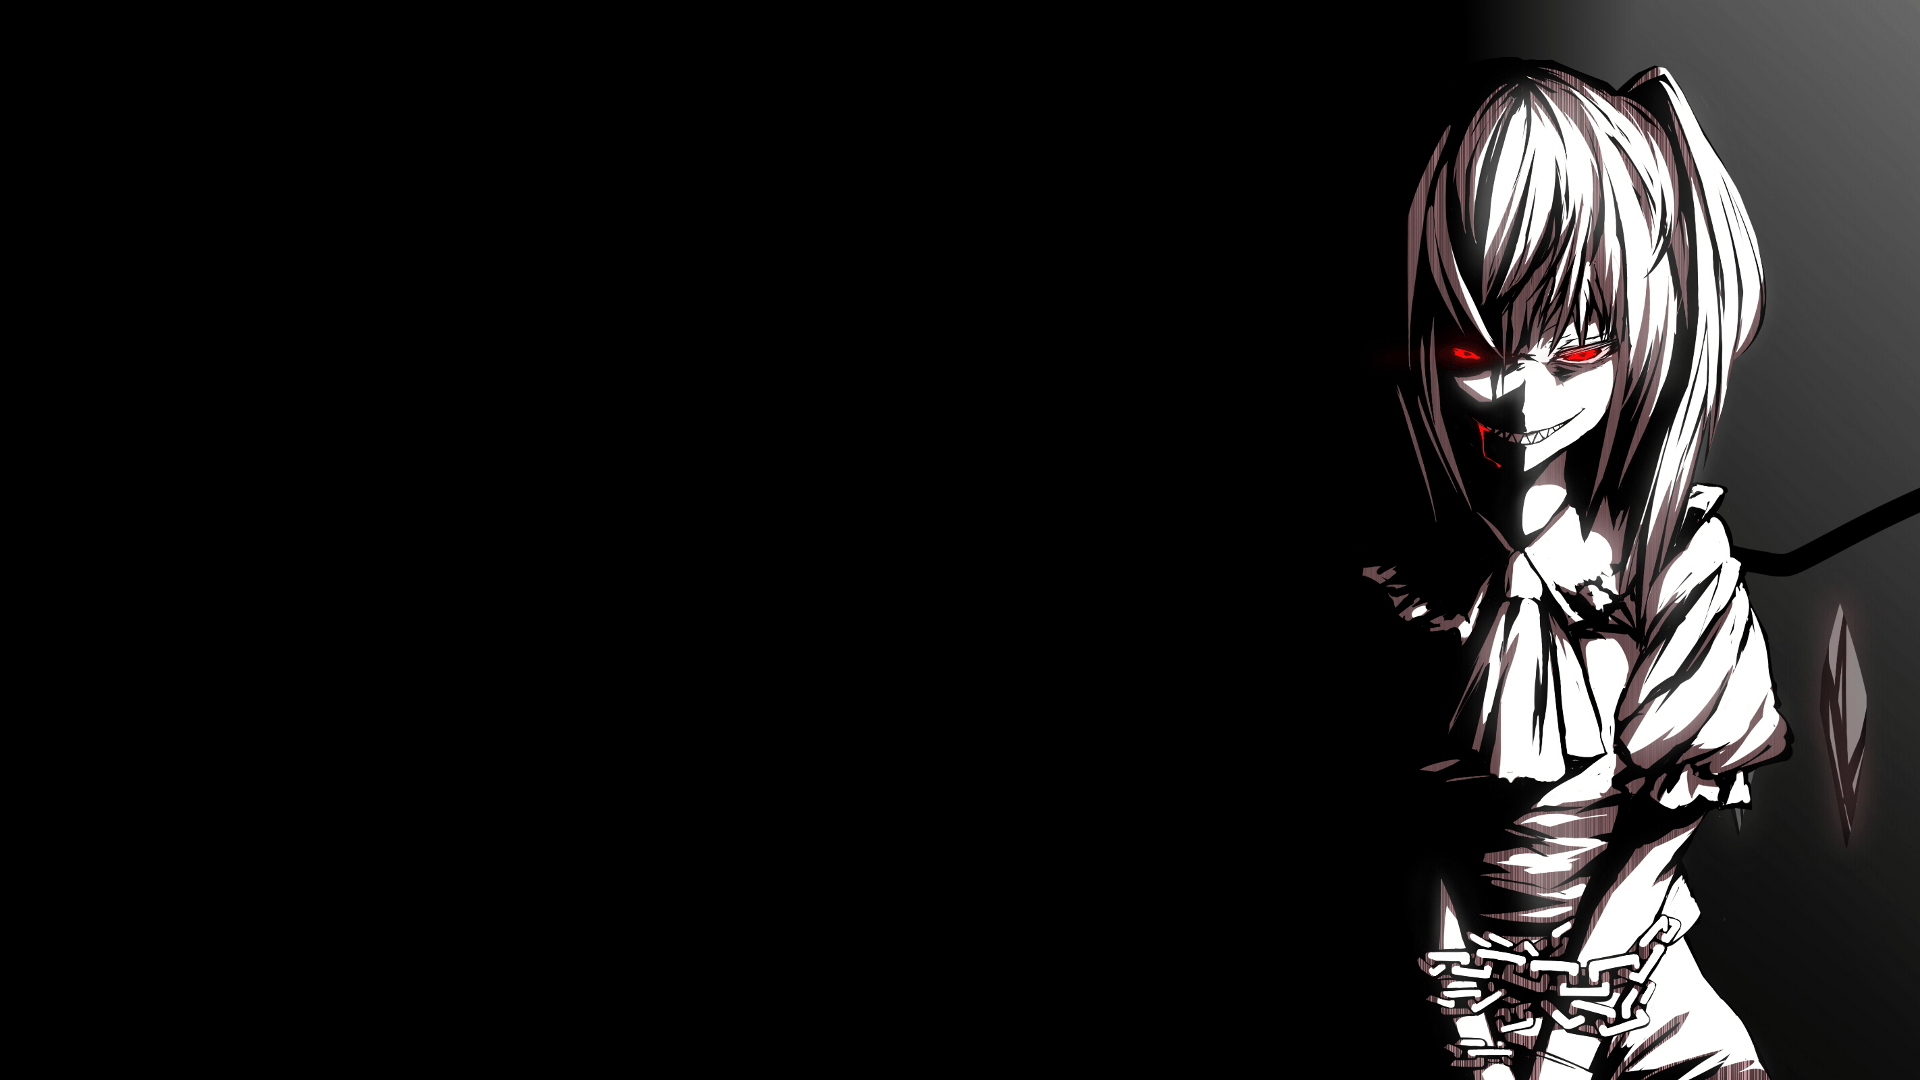 32 Best Free Horror Anime Wallpapers Wallpaperaccess